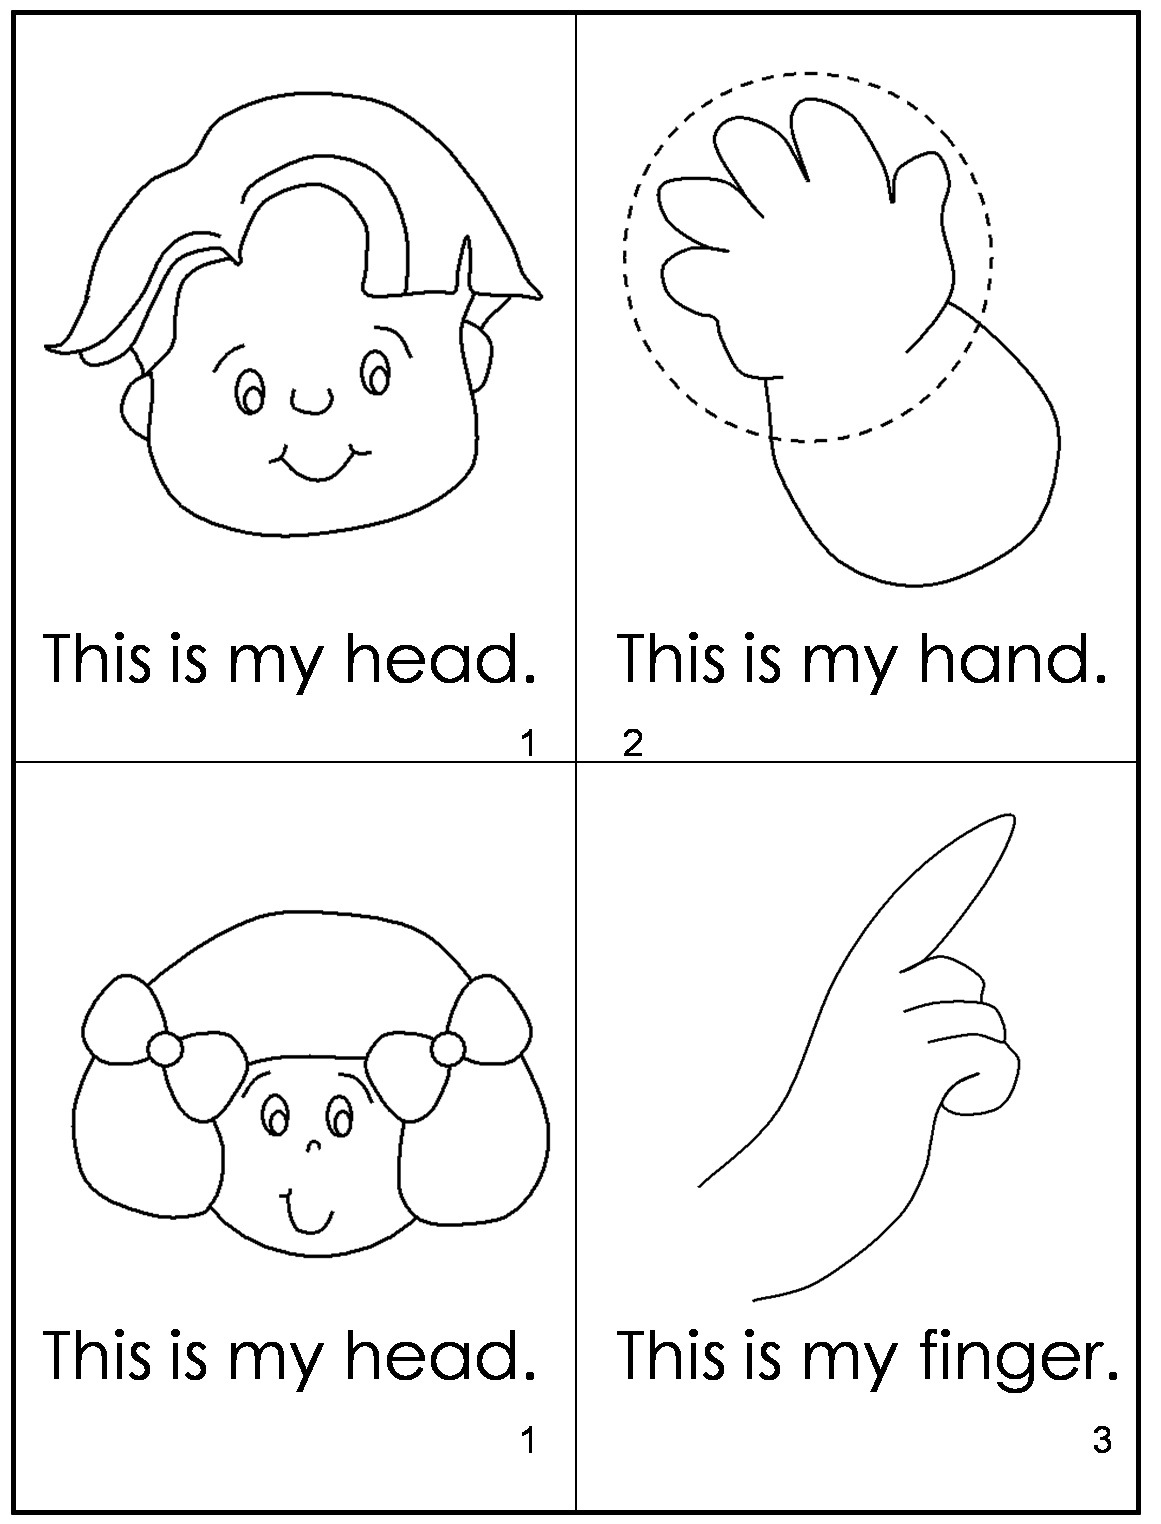 preschool body parts coloring pages - photo#25